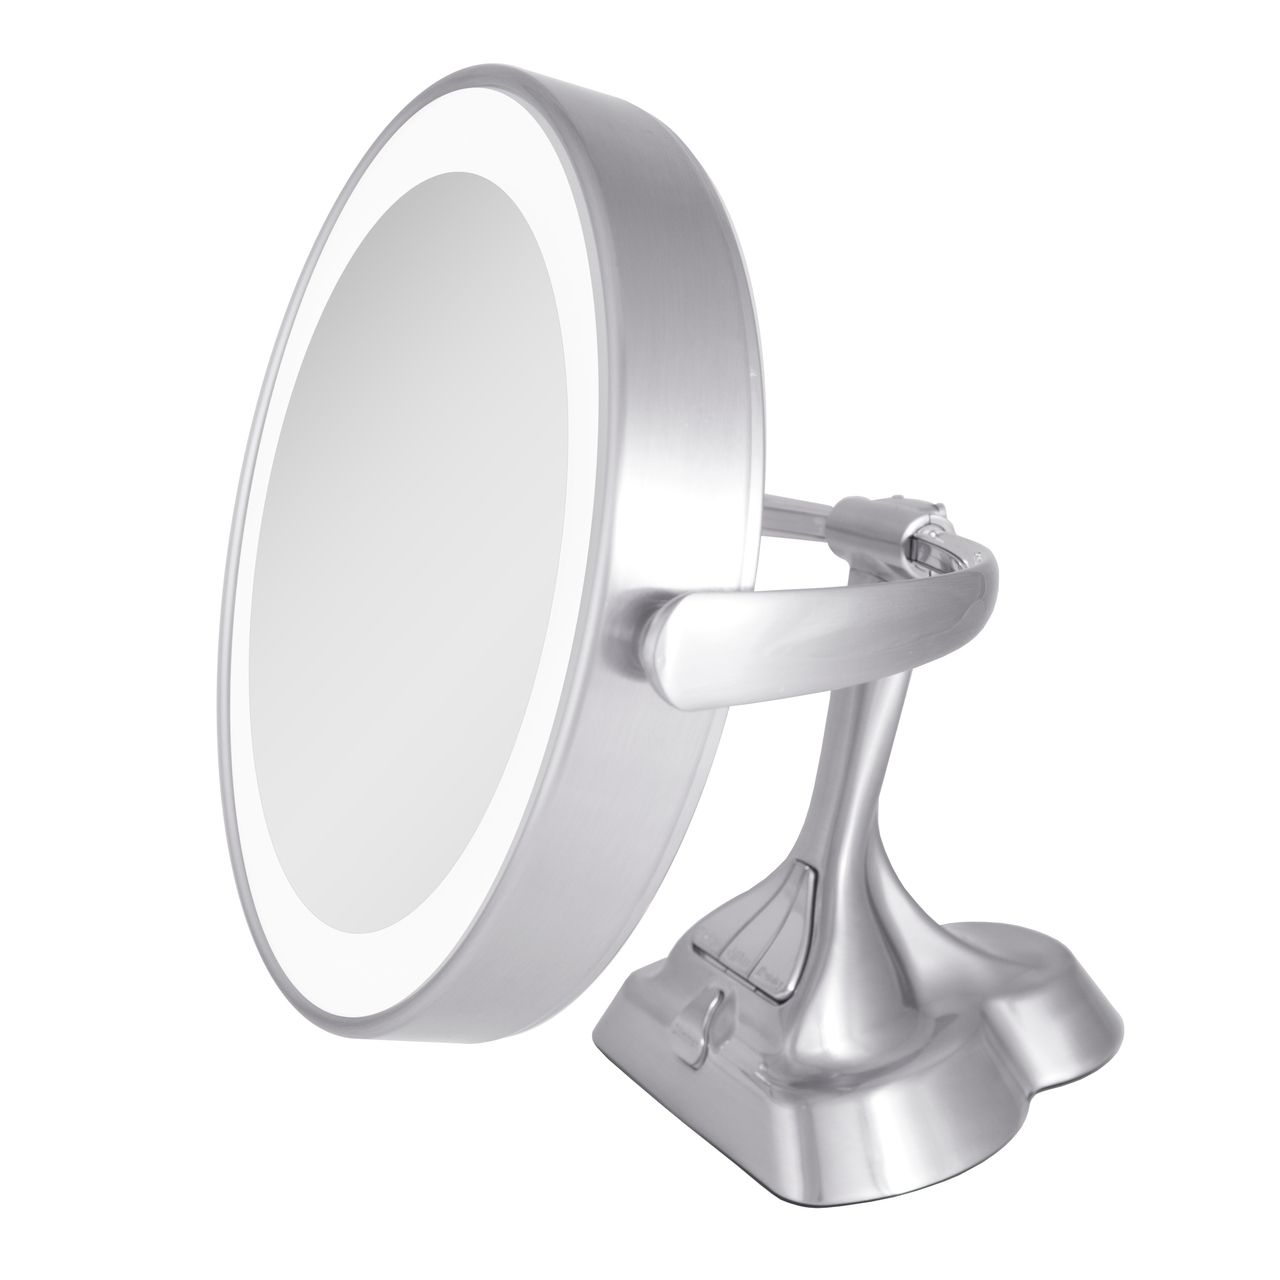 Zadro 10x1x led variable lighted vanity mirror 15999 http zadro 10x1x led variable lighted vanity mirror 15999 http aloadofball Image collections